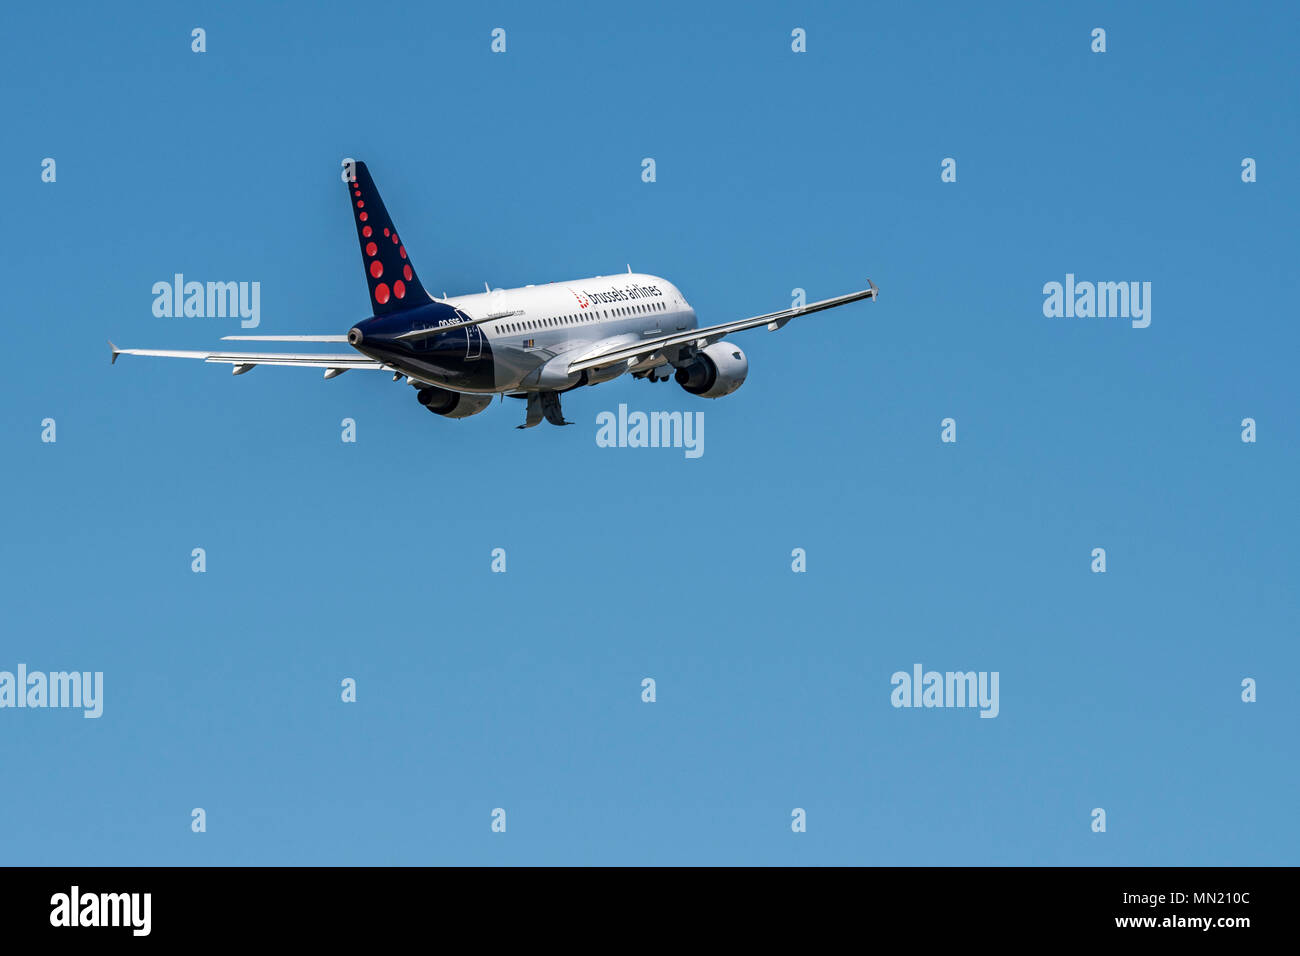 Airbus A319-111 from Brussels Airlines taking off from Brussels-National airport, Zaventem, Belgium - Stock Image